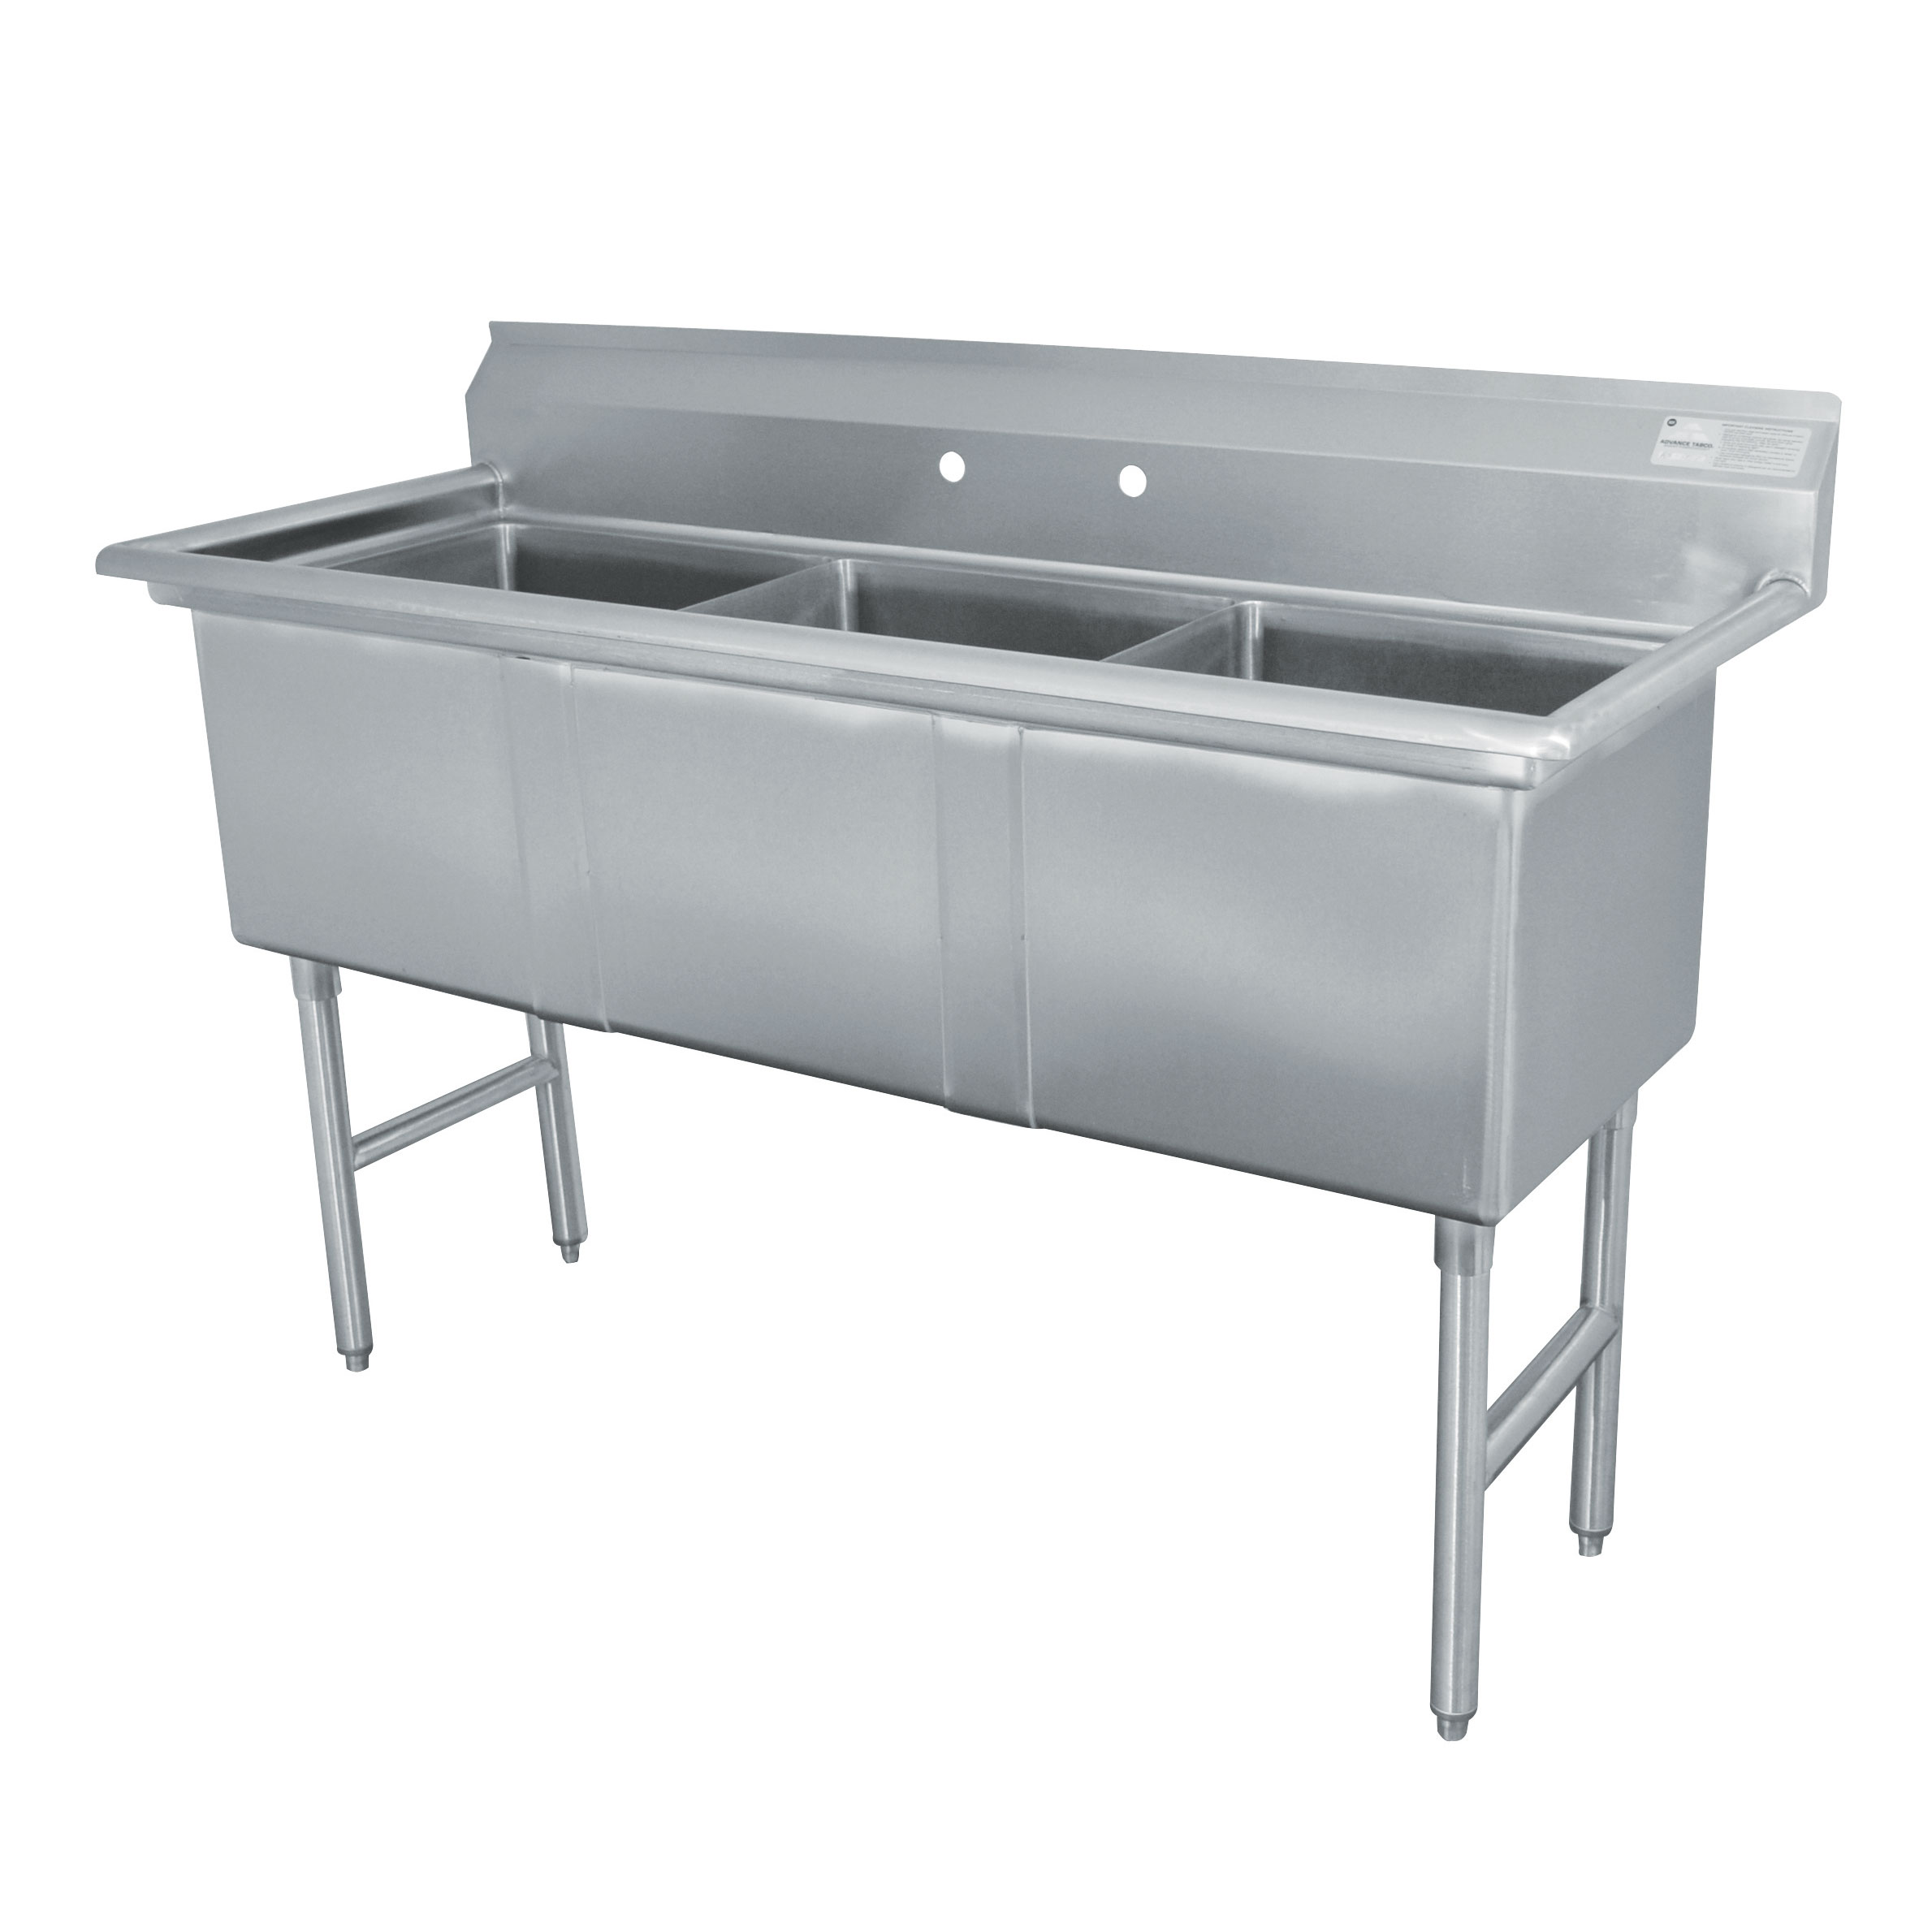 Advance Tabco FC-3-1515 sink, (3) three compartment